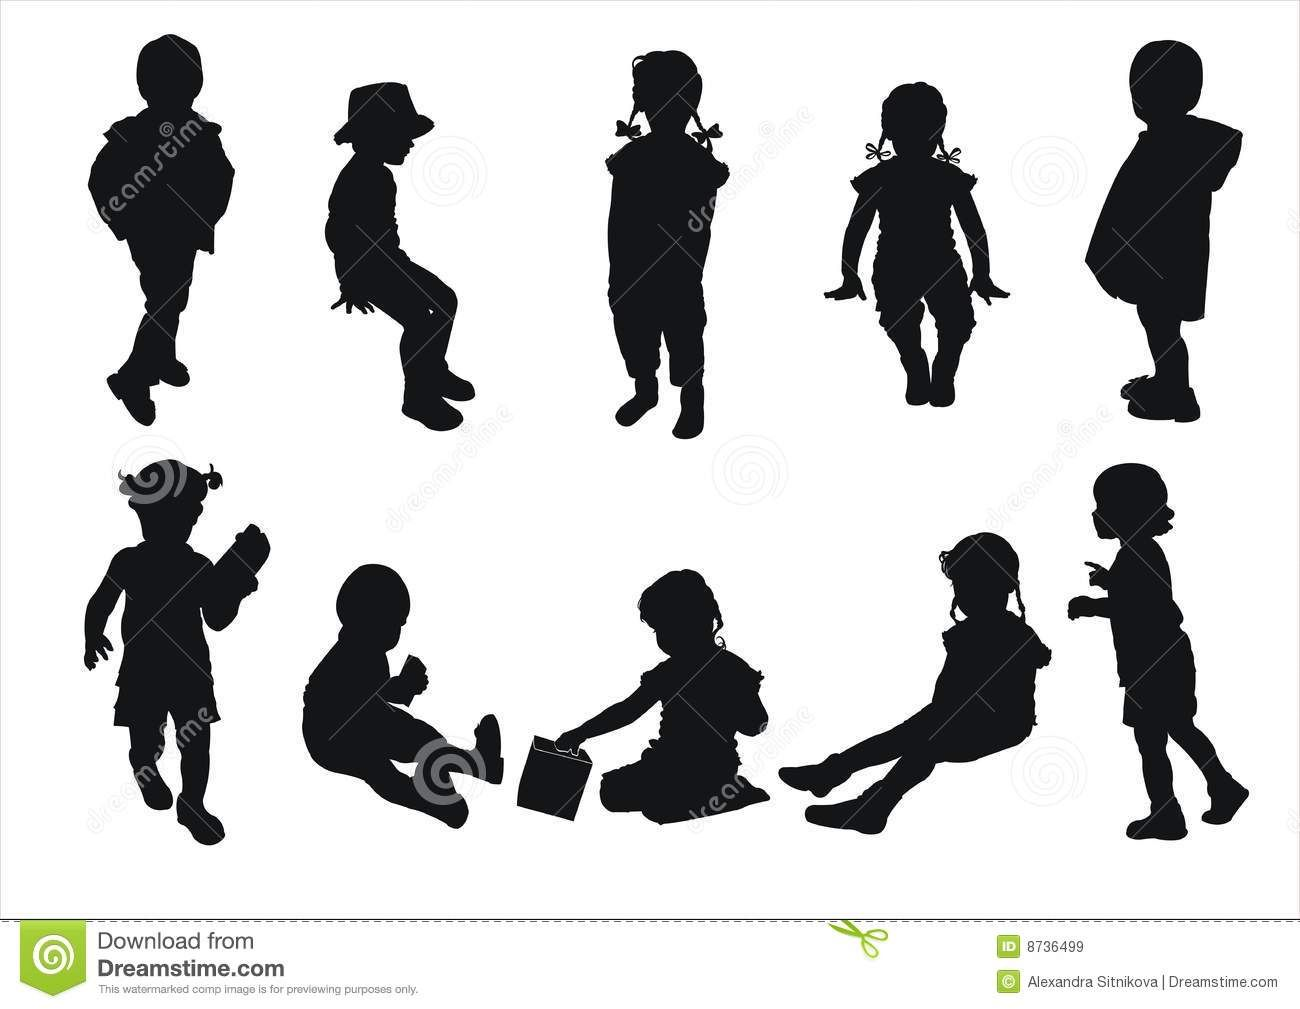 Kids Silhouettes Download From Over 53 Million High Quality Stock Photos Images Vectors Sign Up For Free Toda Kids Silhouette Silhouette Silhouette Images